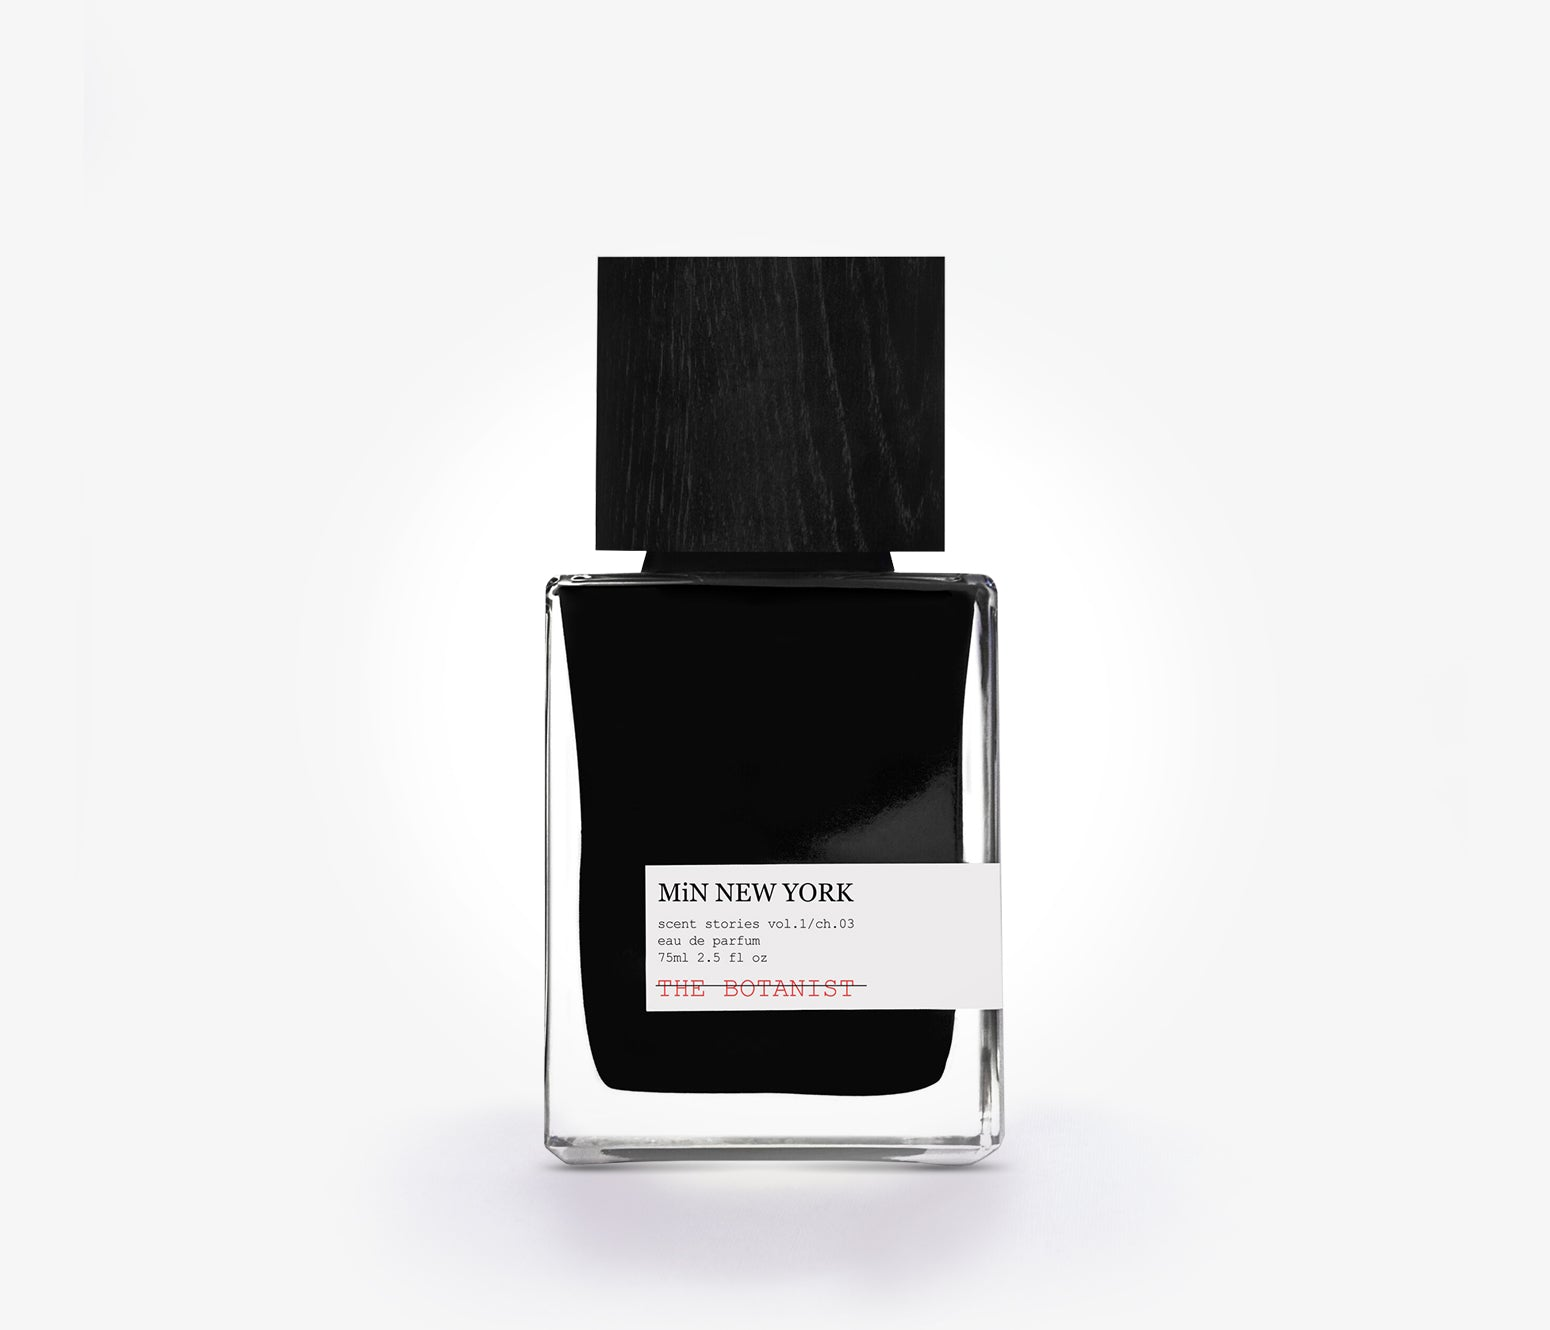 MiN New York - The Botanist - 75ml - KMO001 - Product Image - Fragrance - Les Senteurs